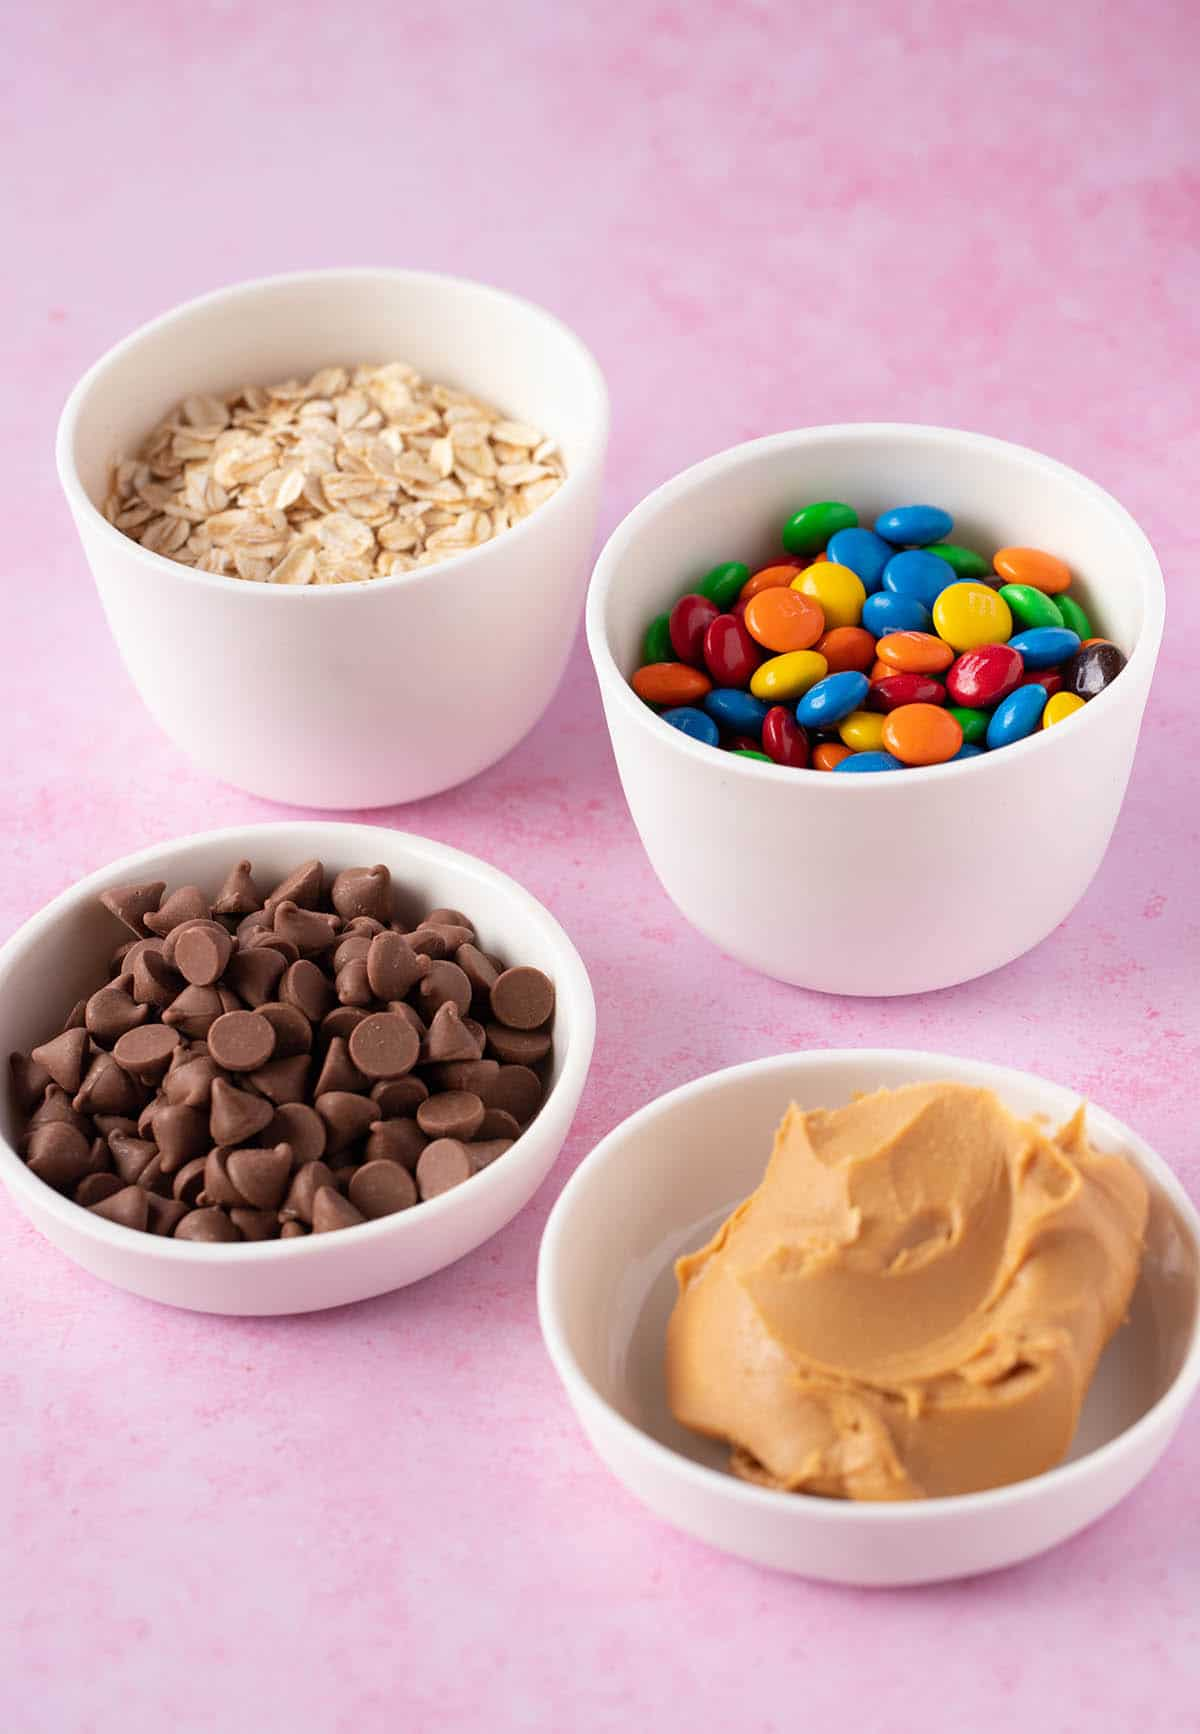 A spread of baking ingredients on a pink background including M&M's and peanut butter